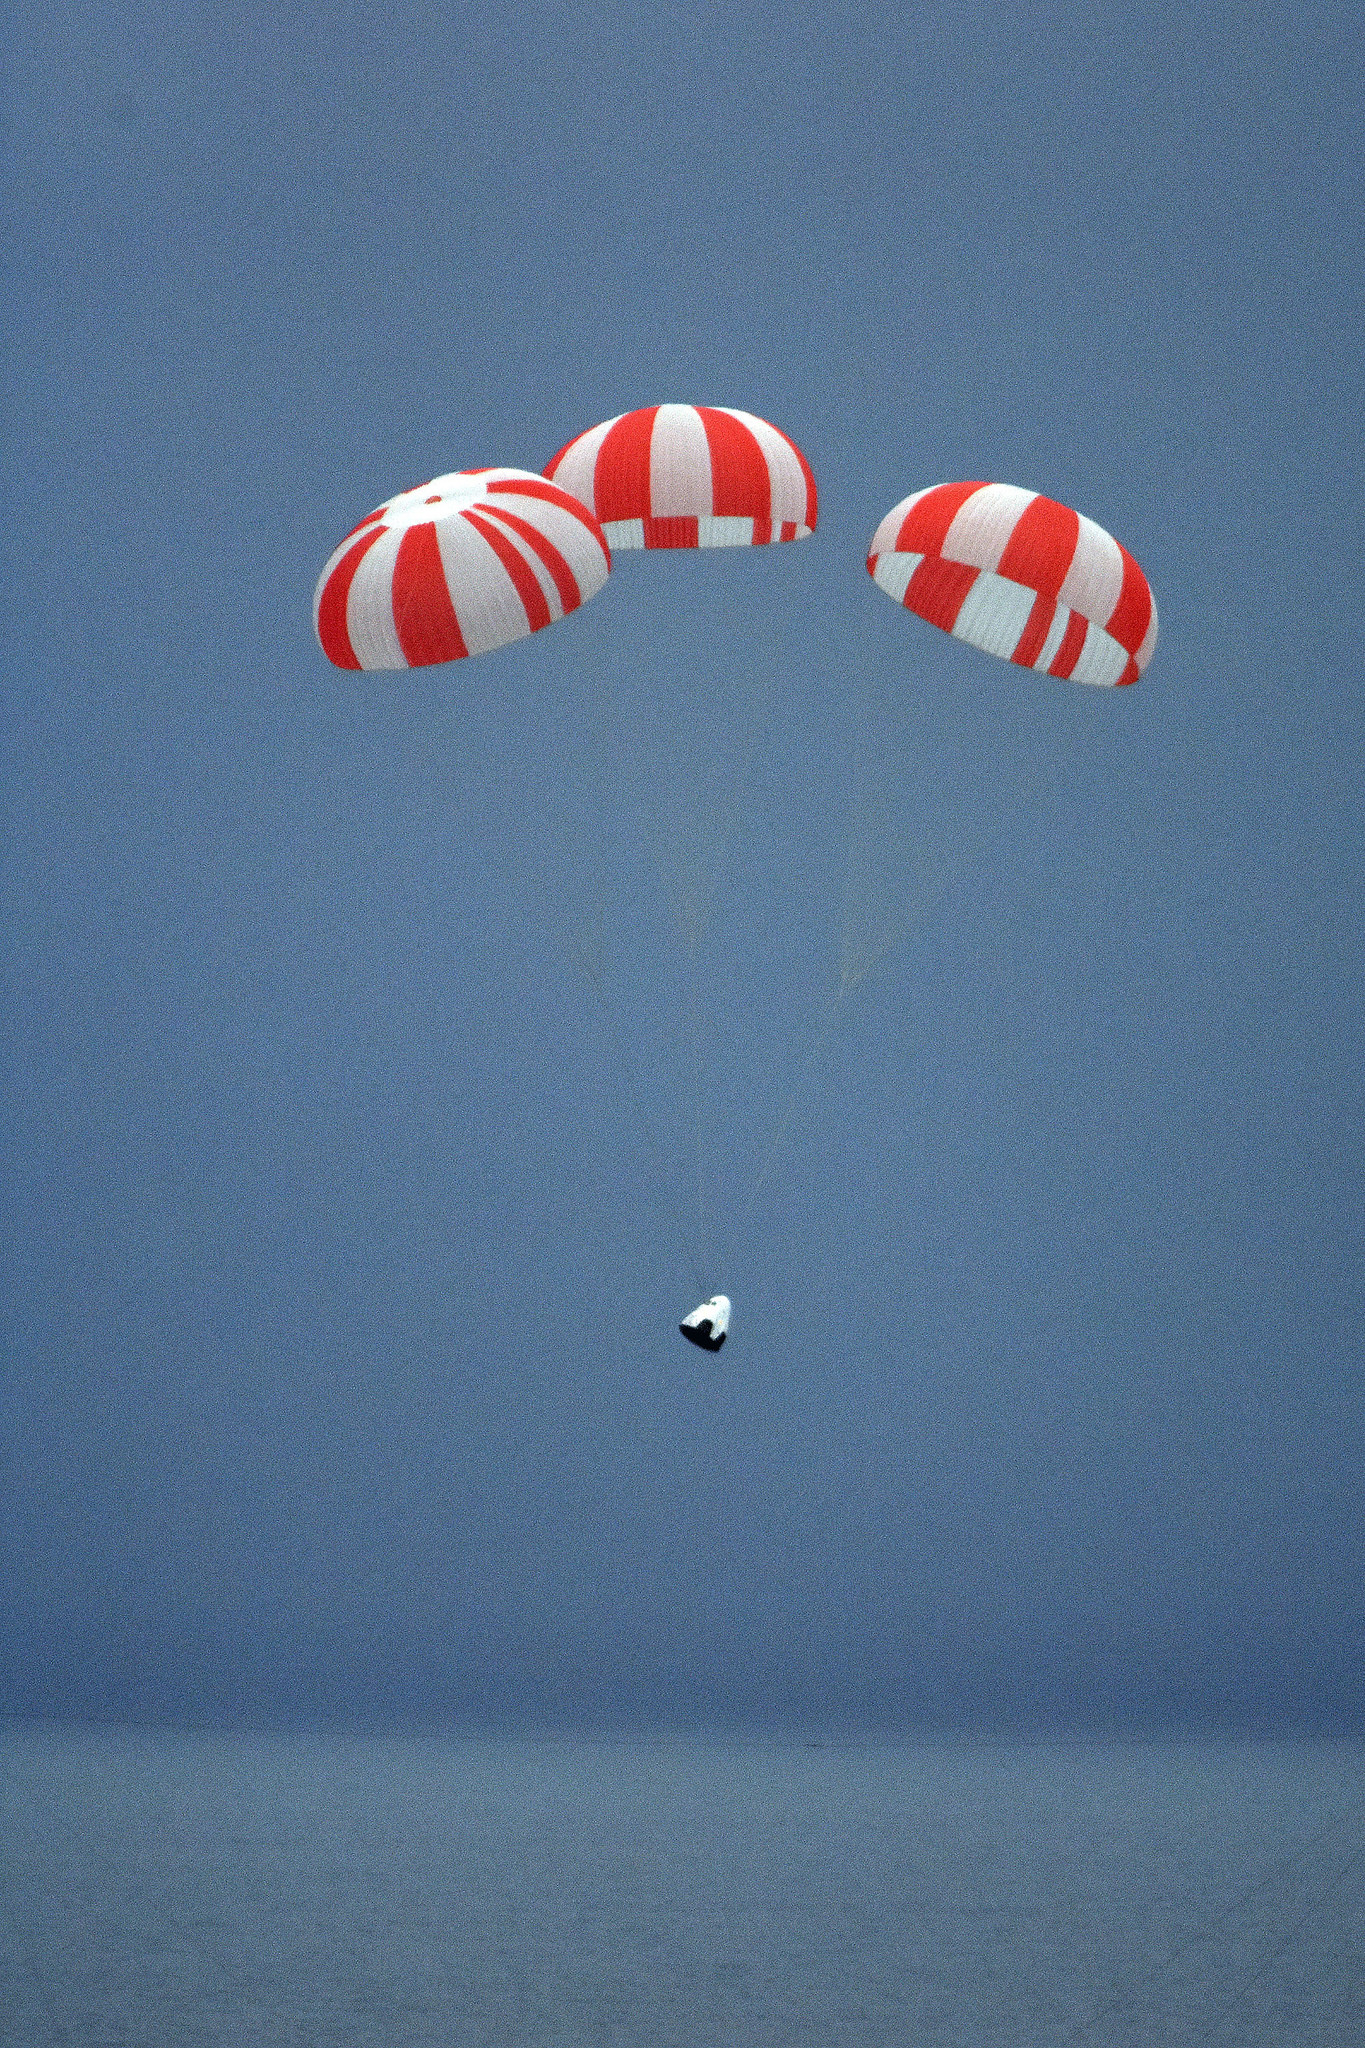 The initial flights of SpaceX's crew-carrying Dragon spacecraft will return to Earth with parachute-assisted splashdowns in the ocean. Credit: SpaceX